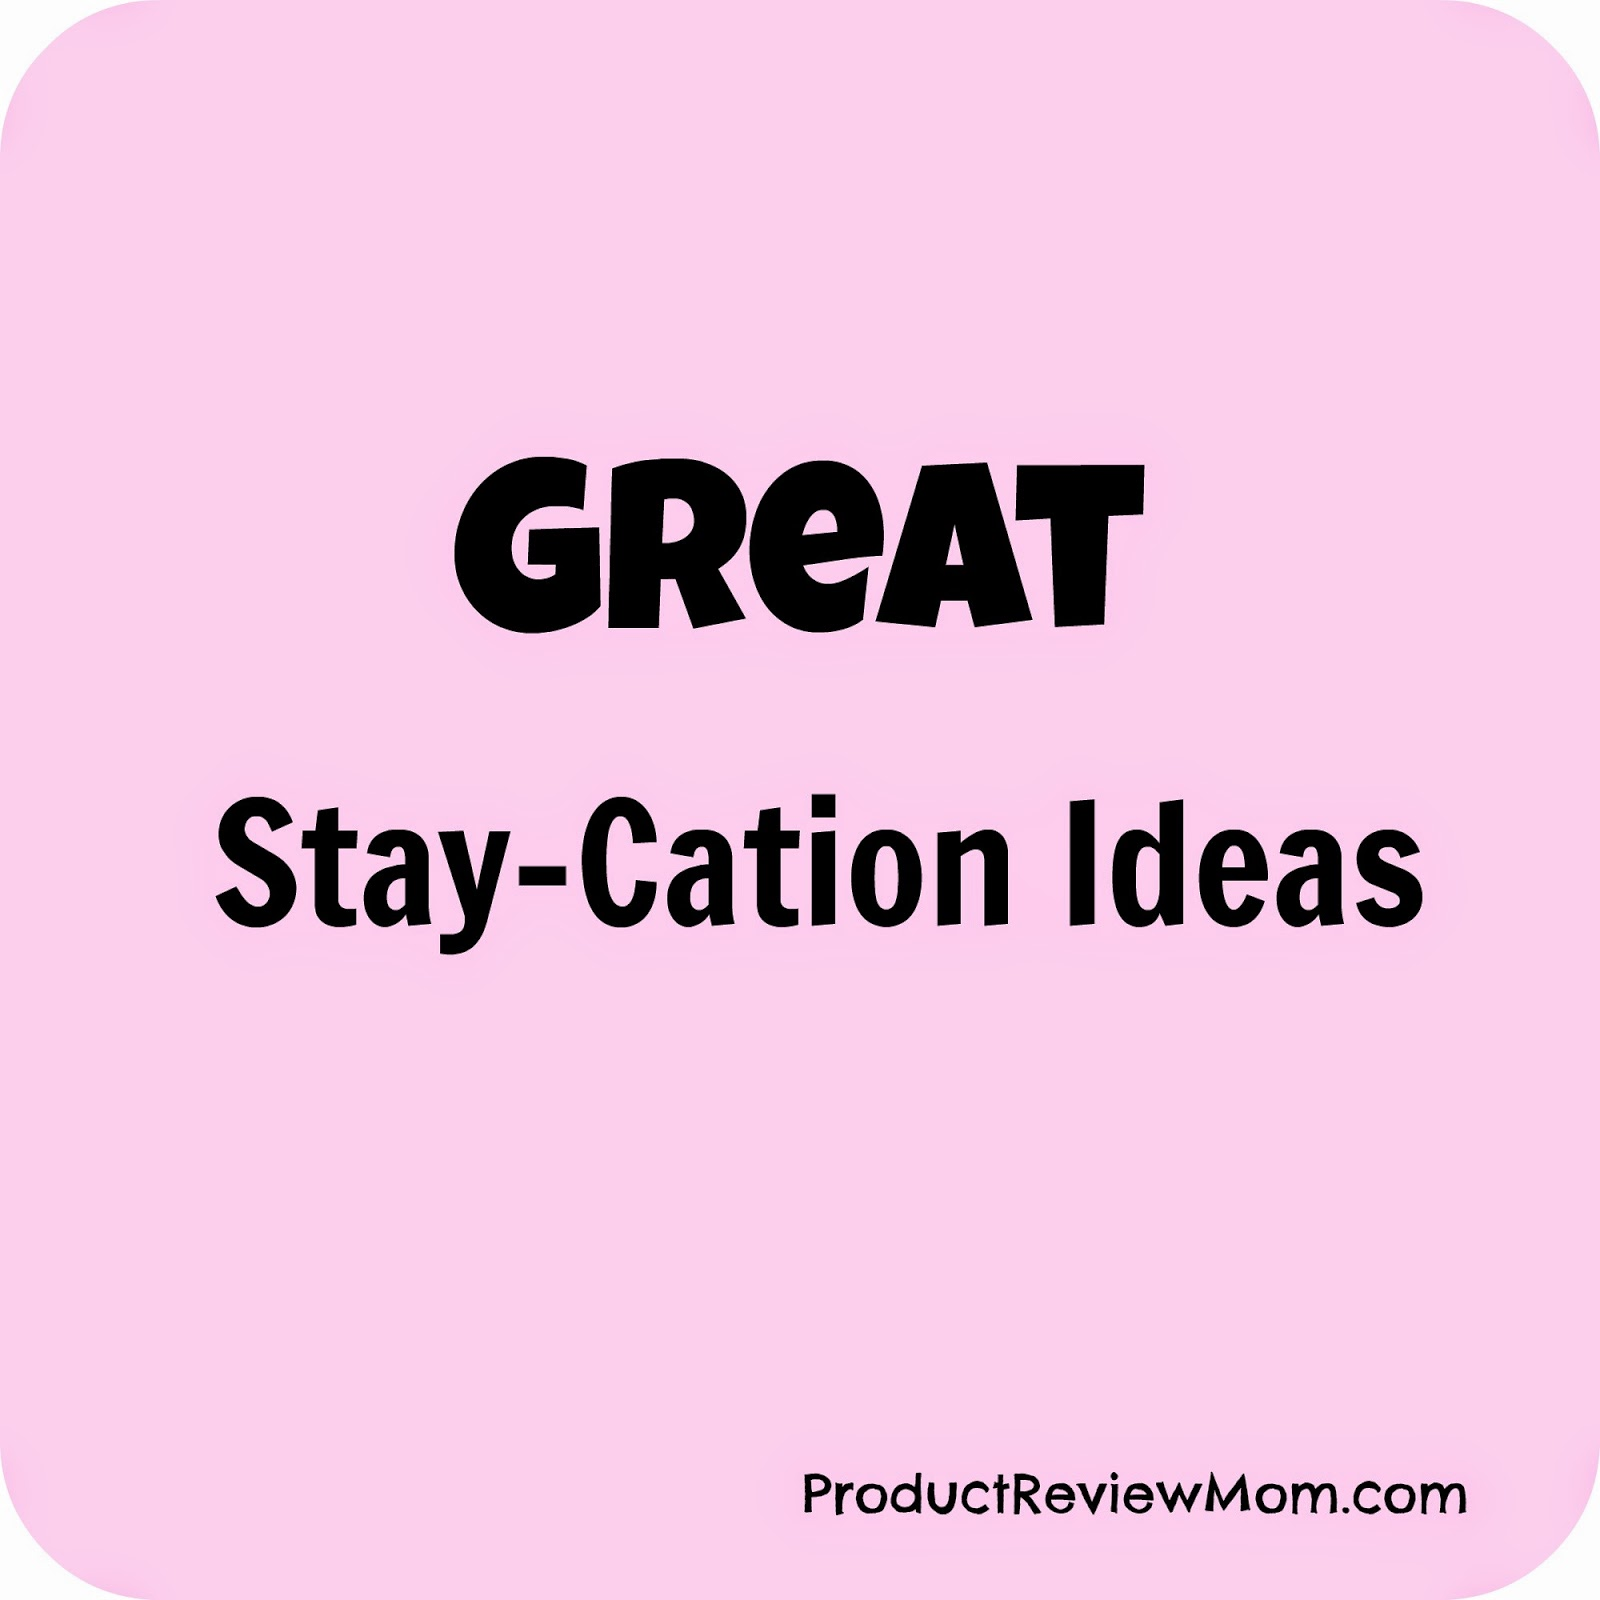 Great Stay-Cation Ideas (Summer Blog Series) via ProductReviewMom.com